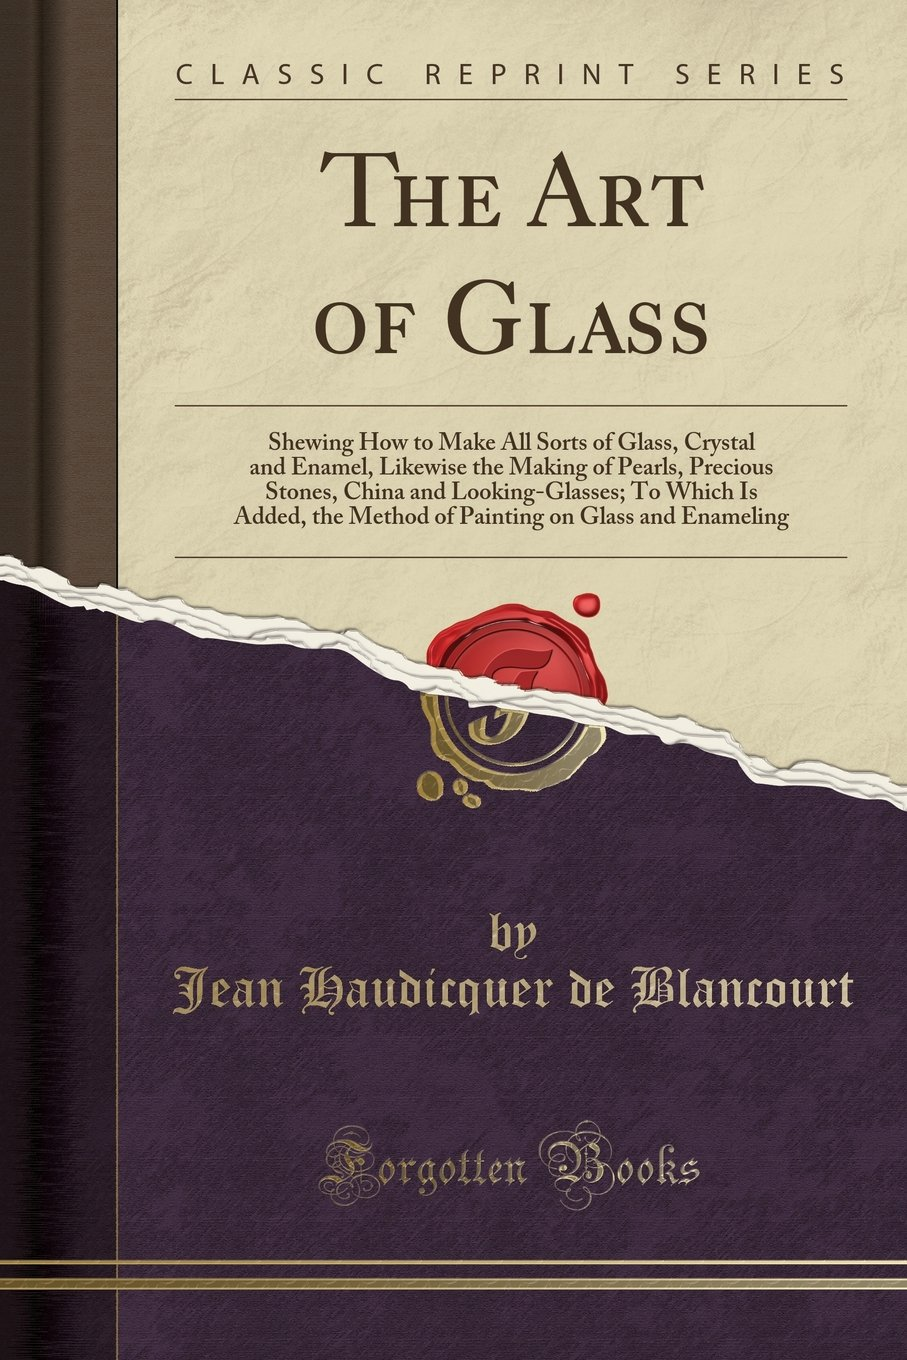 Download The Art of Glass: Shewing How to Make All Sorts of Glass, Crystal and Enamel, Likewise the Making of Pearls, Precious Stones, China and ... on Glass and Enameling (Classic Reprint) ebook